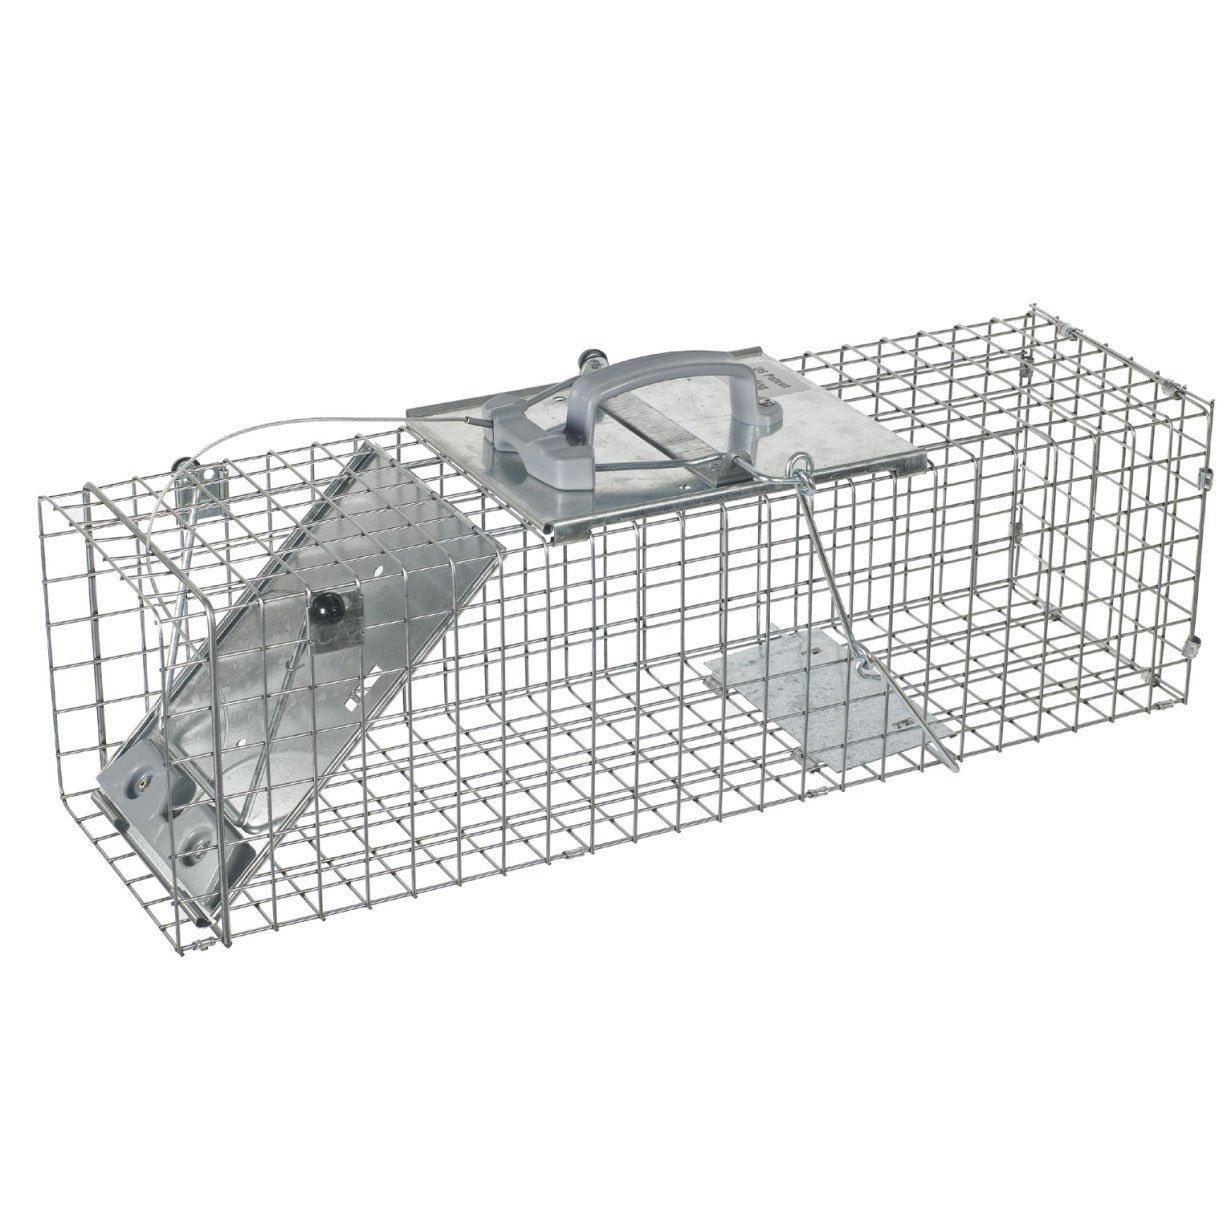 Easy Set/Release Trap 24 x 9 x 10 in. Best Price